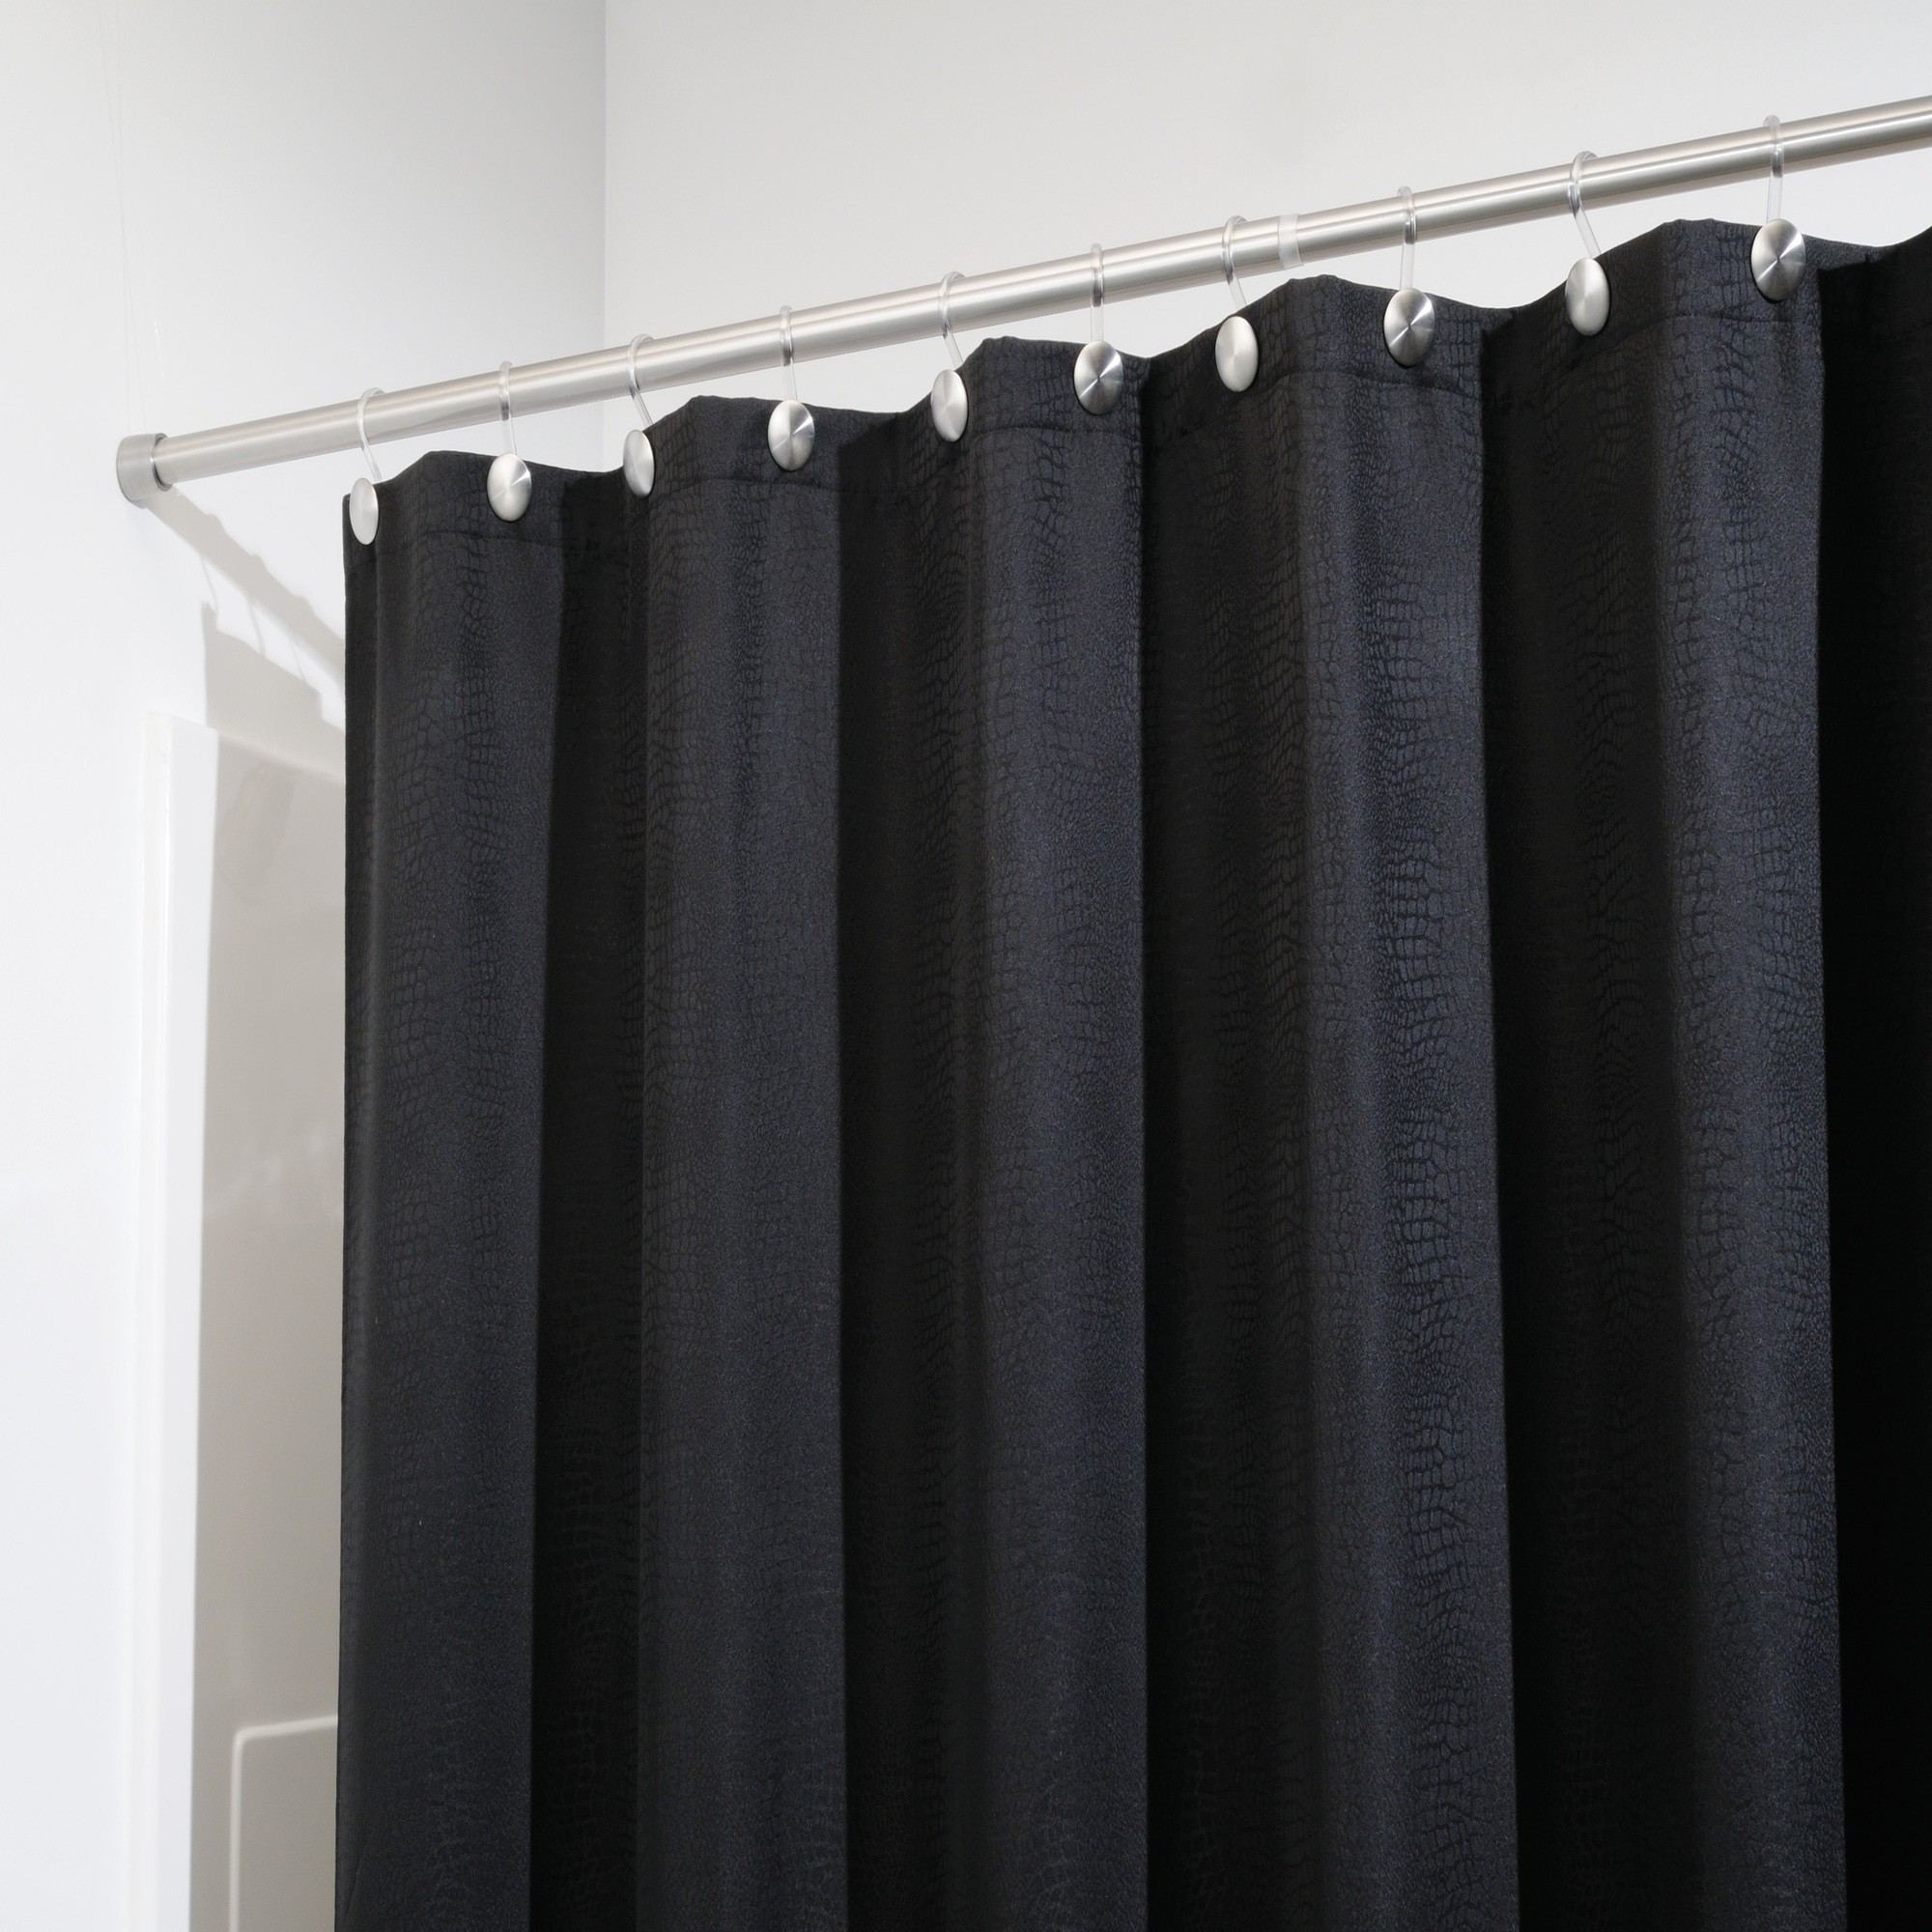 Tension Shower Curtain Rods | Shower Curtain Rod Length | Shower Curtain Tension Rod